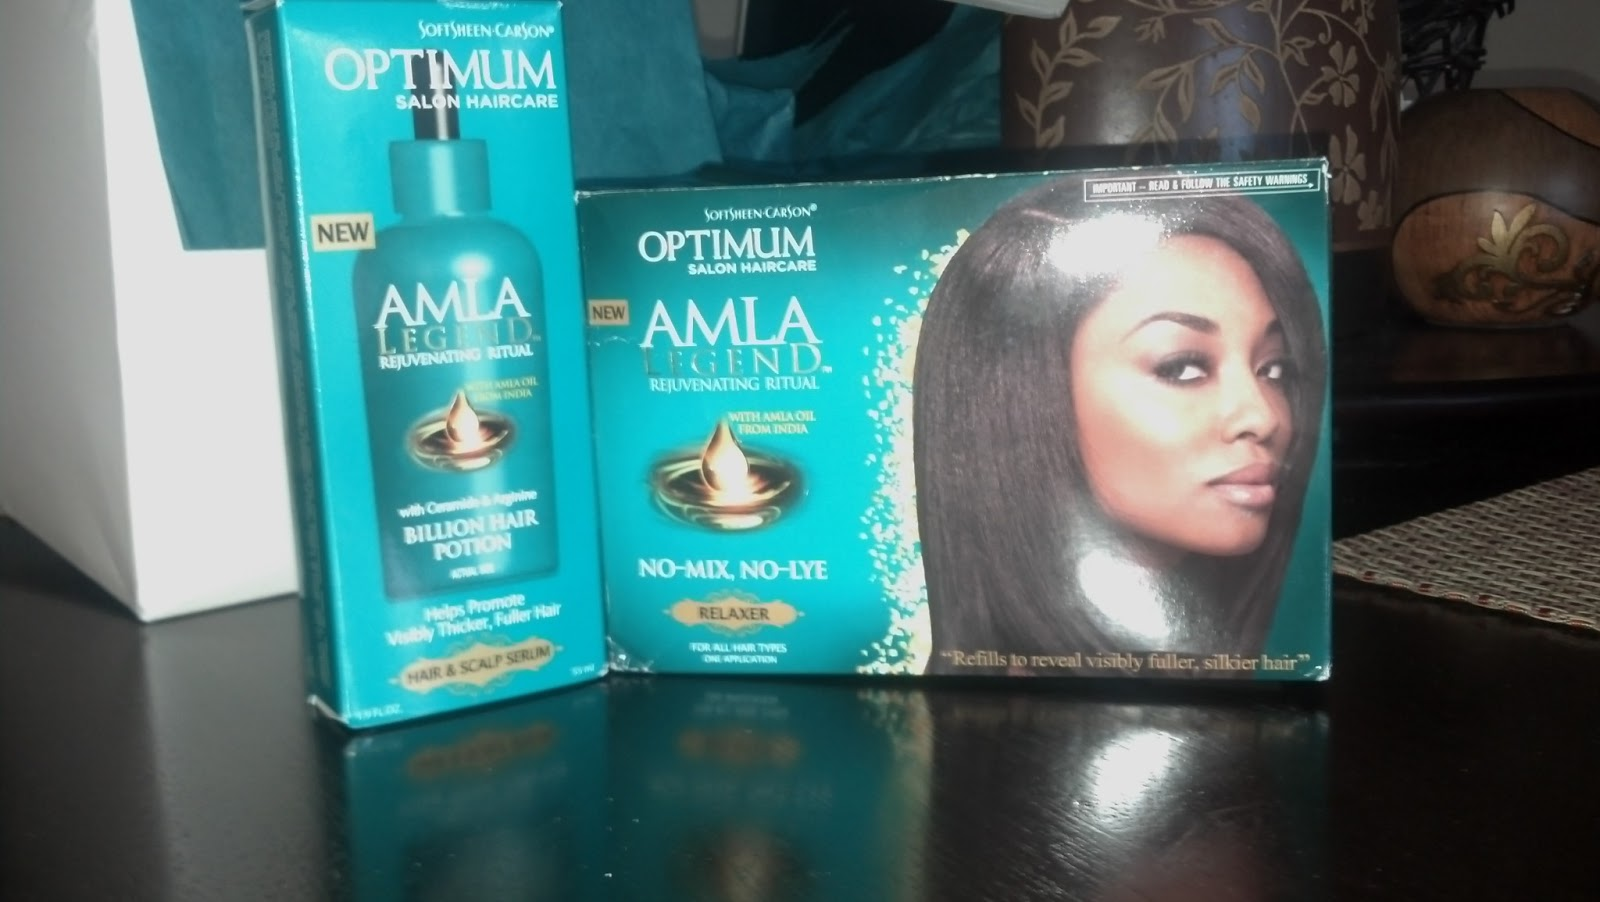 Sdestra: Switching To A New Hair Relaxer: Optimum Salon HairCare Amla ...